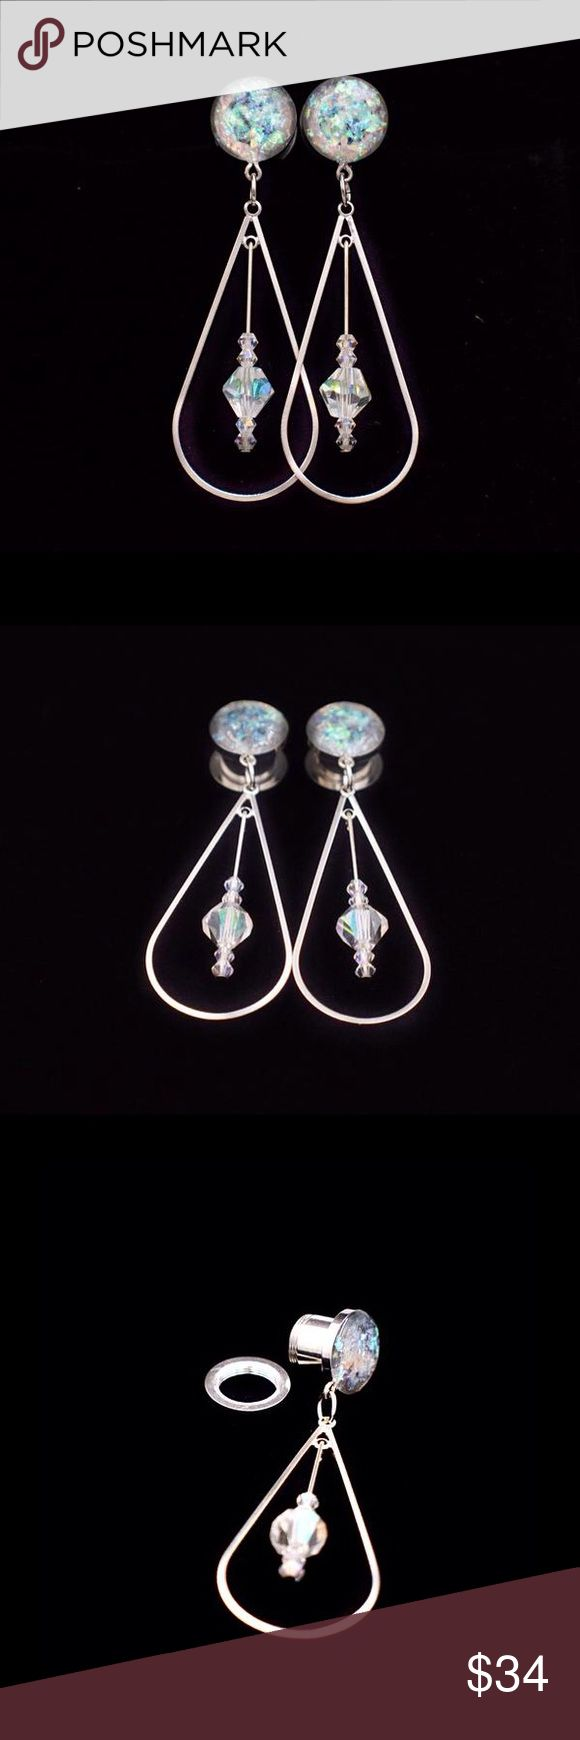 Holographic Crystal Teardrop Dangle Plugs Orders are Made & Shipped in 1-2 business days A pair of absolutely gorgeous Holographic Crystal Teardrop Dangle plugs. These start with a beautiful holographic top that features a silver teardrop dangle with crystal gems. The teardrop piece hangs down about 1 1/2 inches and is about 1 inches wide. The plug is a high grade 316L surgical steel with a screw on backing that makes them easy to put in and no having to worry about them falling out. Jew